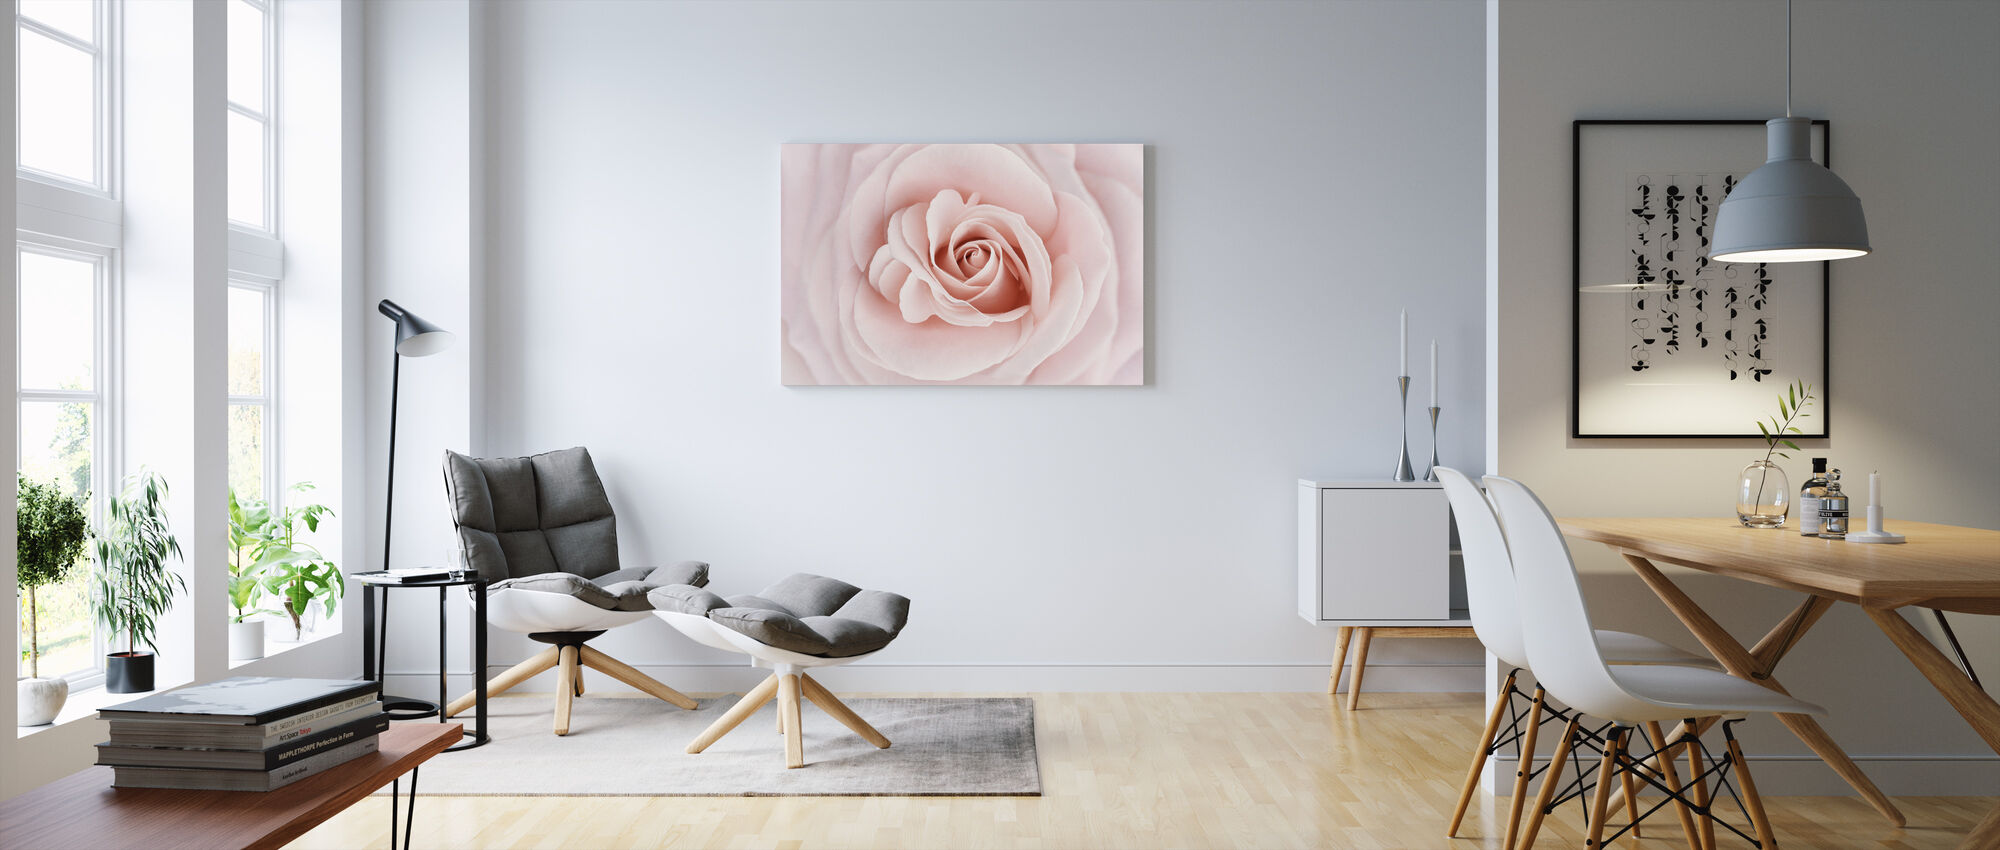 Soft Rose in Peach Pink Shades - Canvas print - Living Room